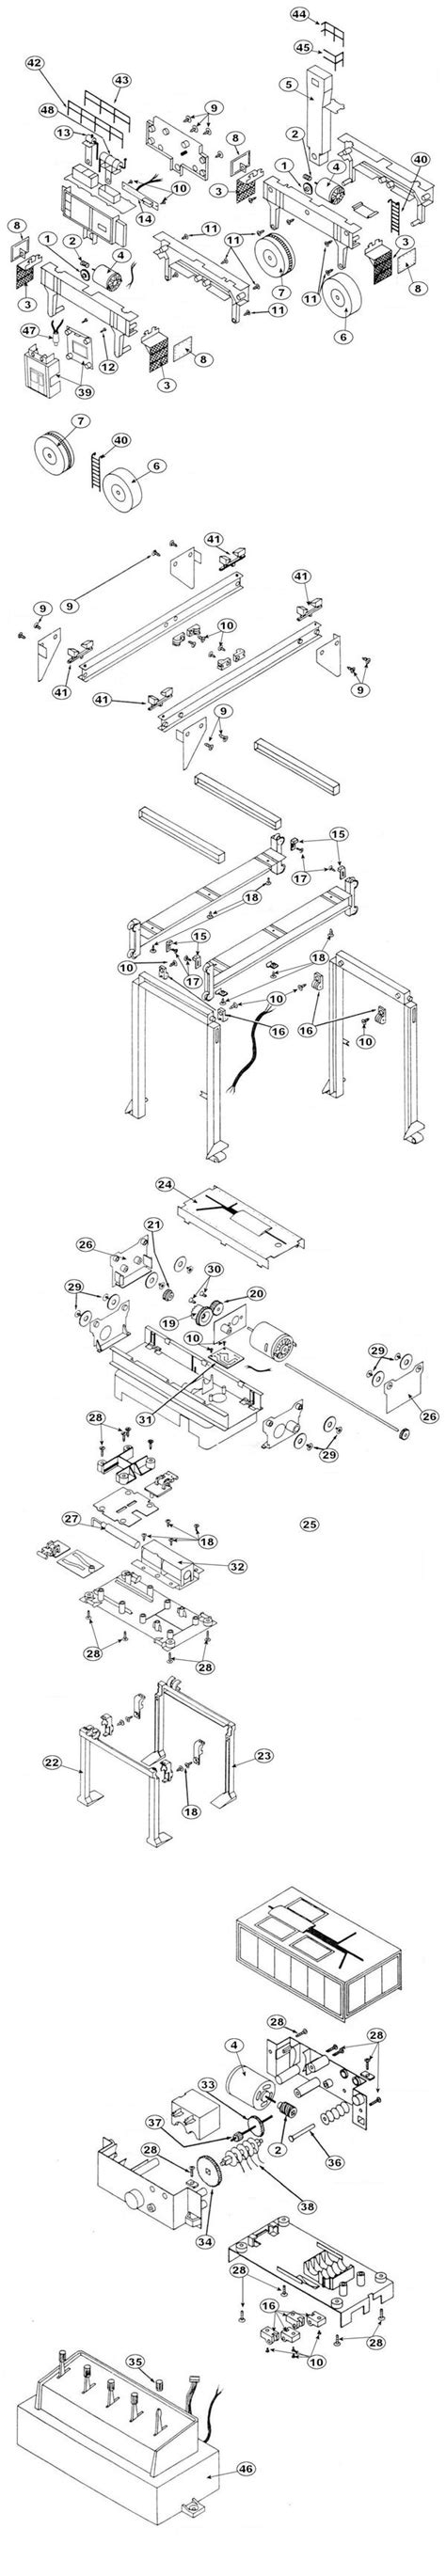 lionel parts list and exploded diagrams lionel replacement parts o model trains from